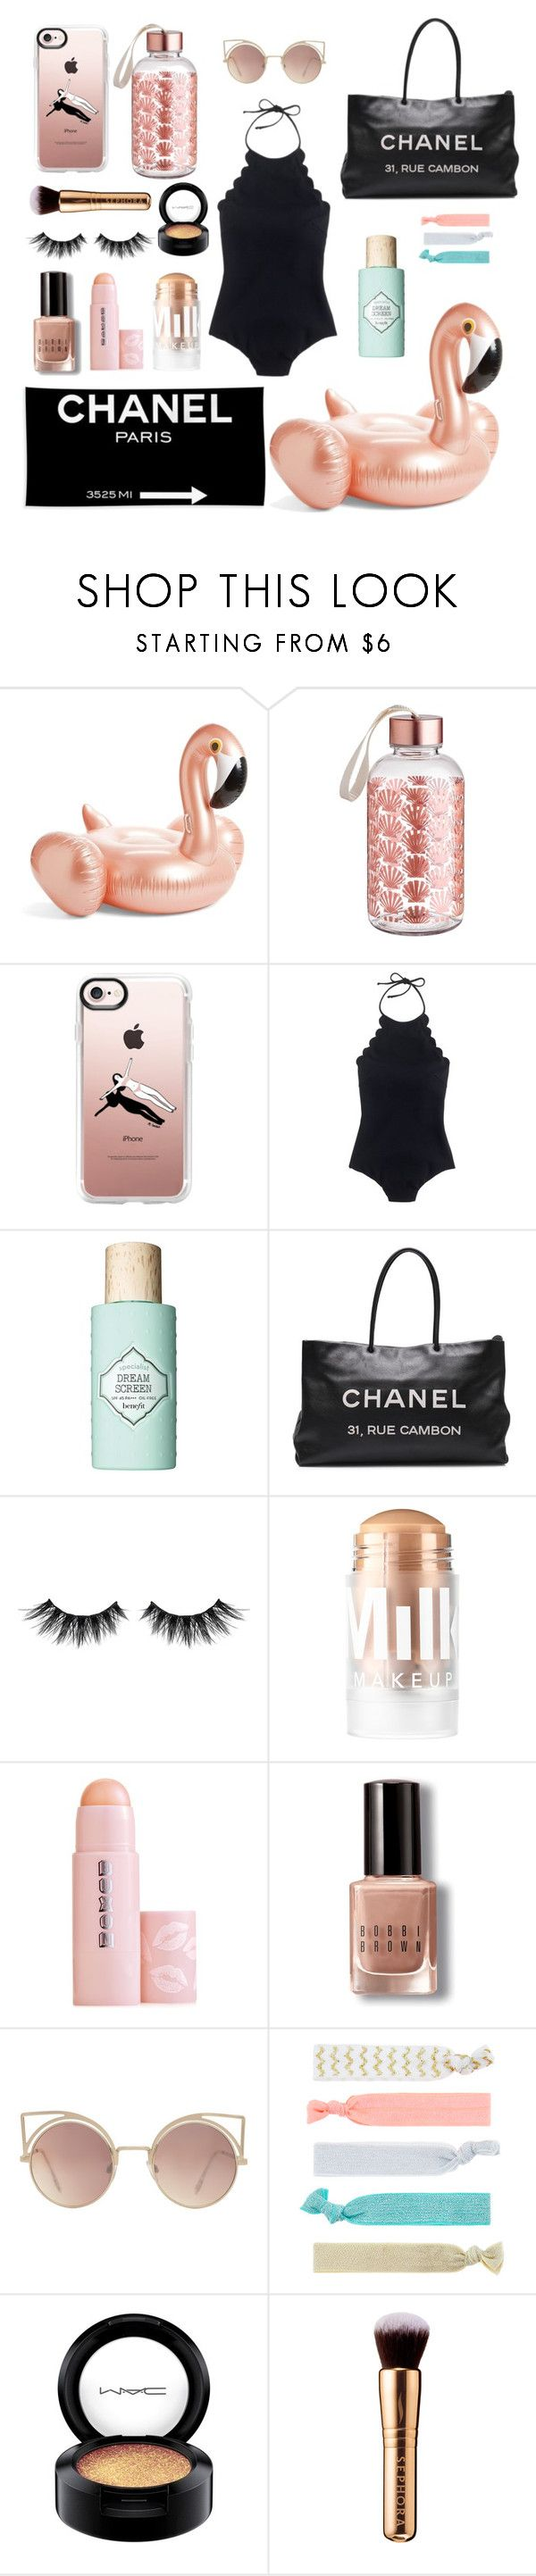 """""""beach babe"""" by crybarbietears ❤ liked on Polyvore featuring Casetify, Chanel, J.Crew, Benefit, Huda Beauty, MILK MAKEUP, Buxom, Bobbi Brown Cosmetics, MANGO and Accessorize"""